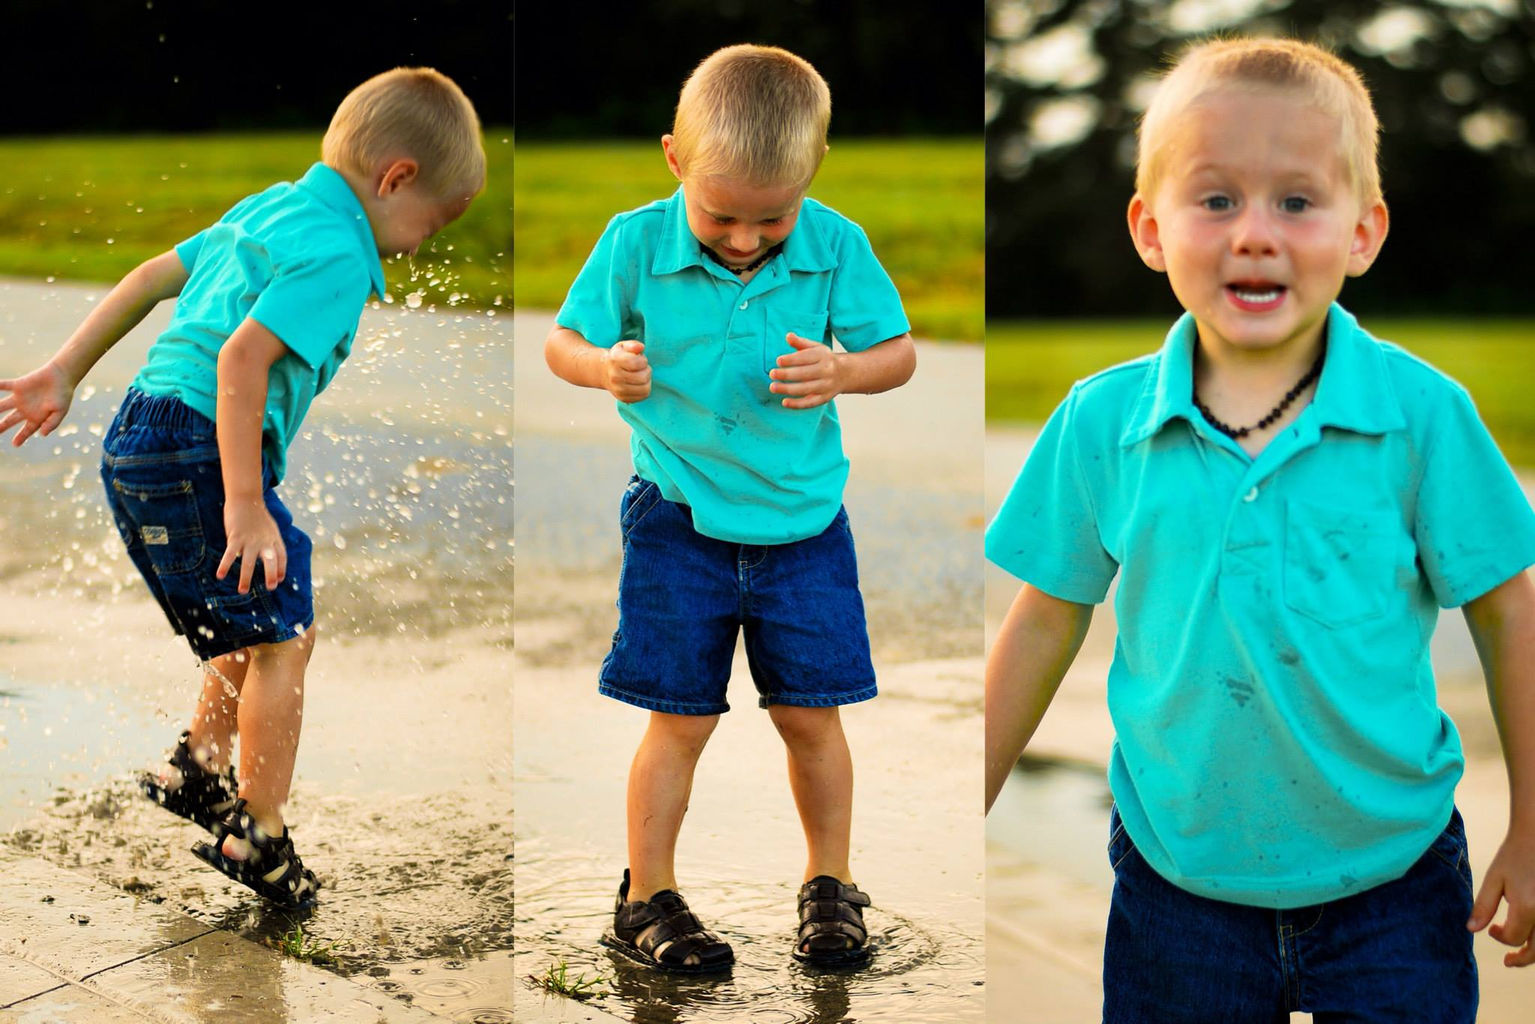 Toddler Portrait Photographer playing in the rain puddles